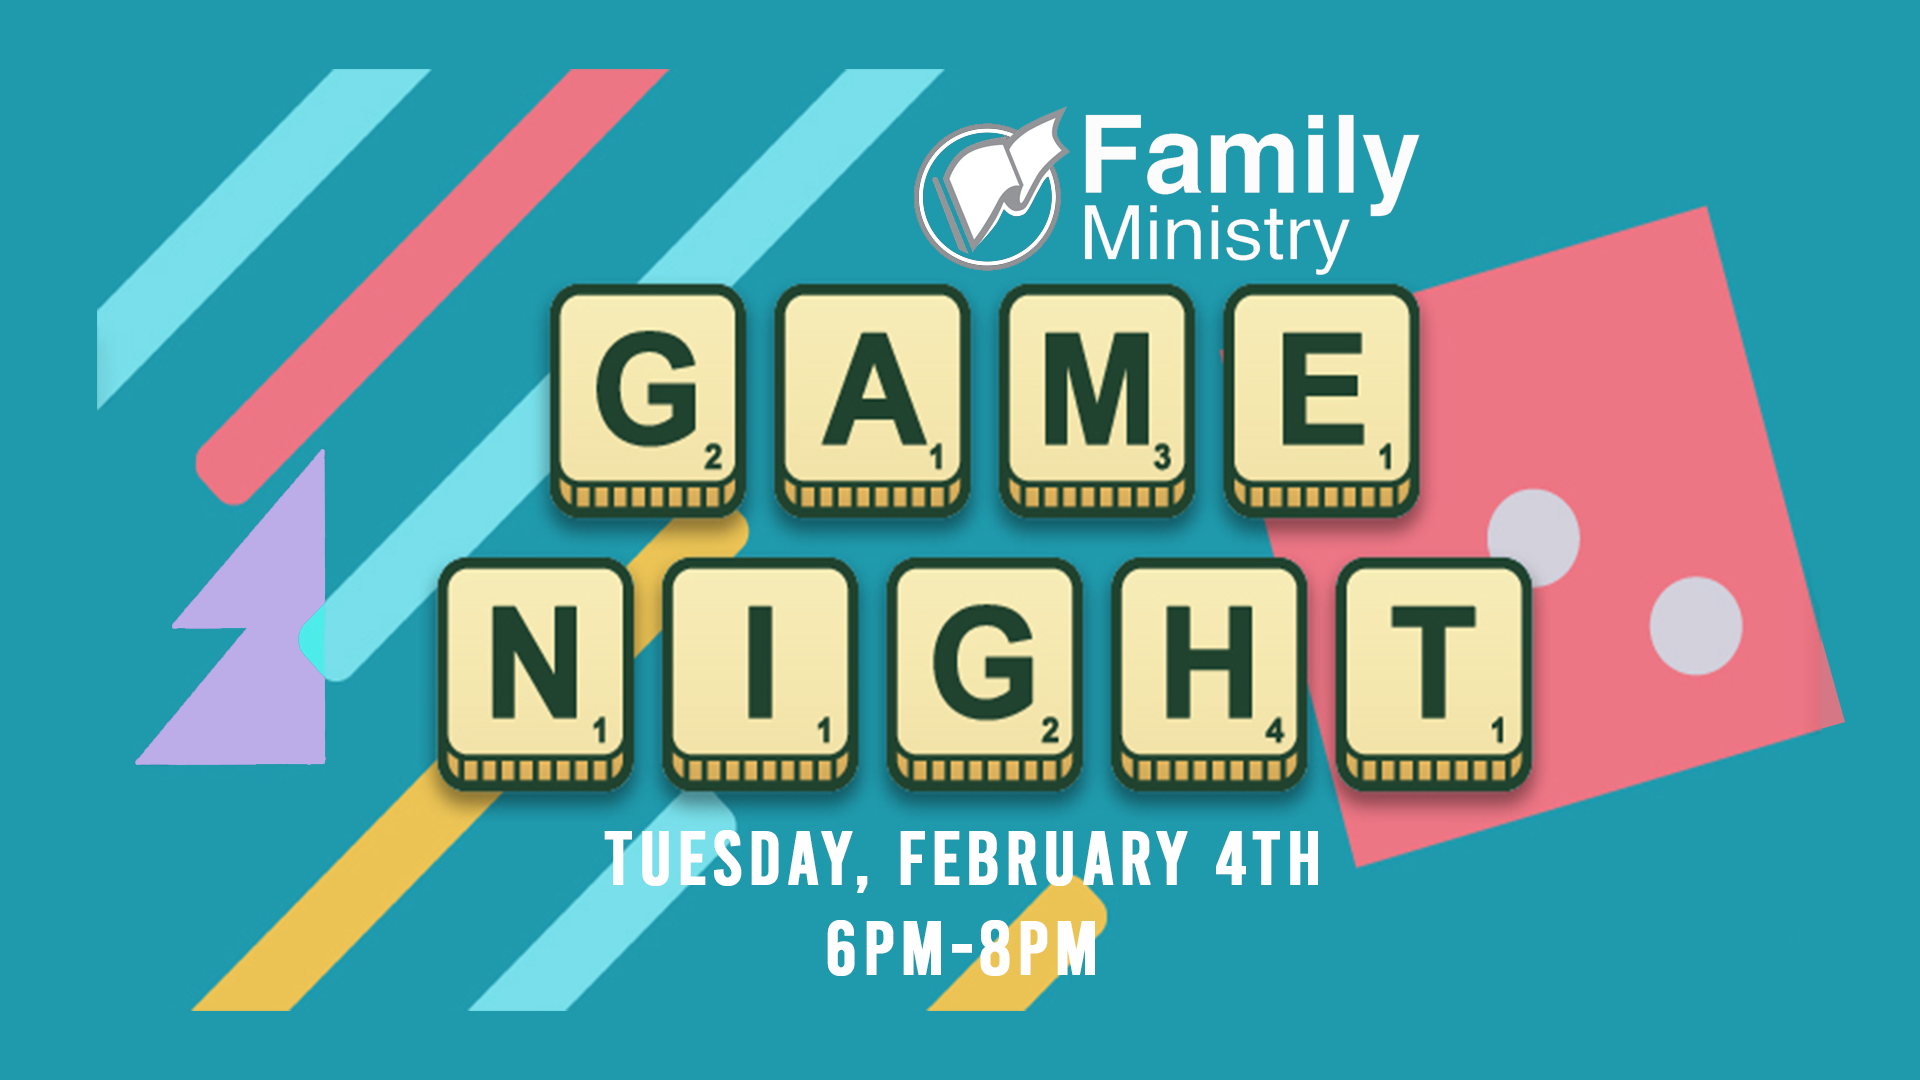 Family Game Night Graphic image